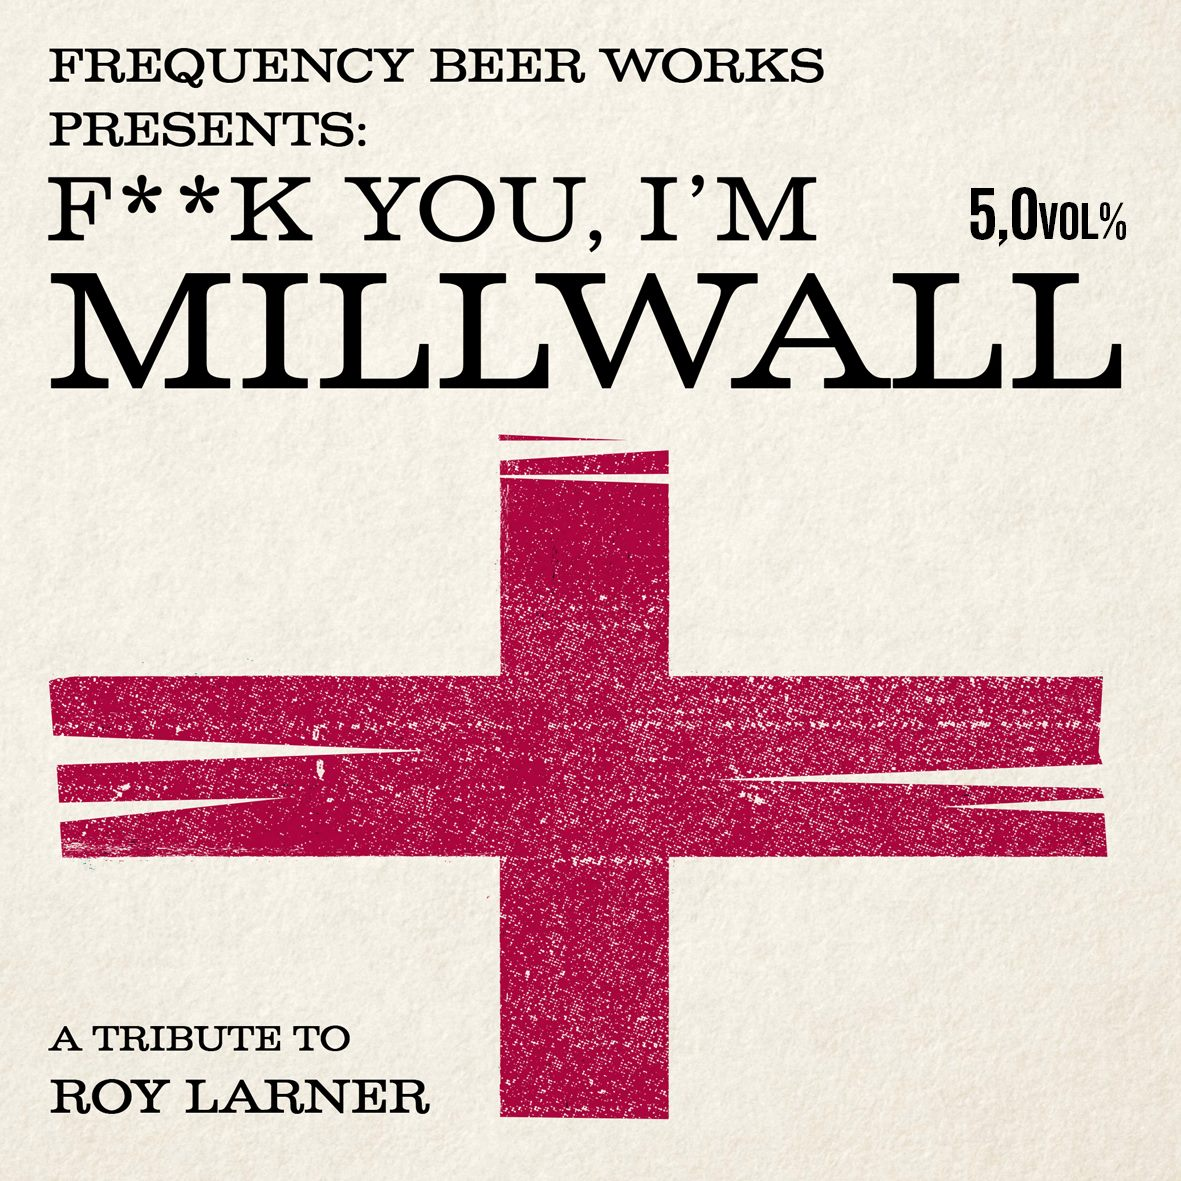 Image result for F*** you I'm Millwall beer